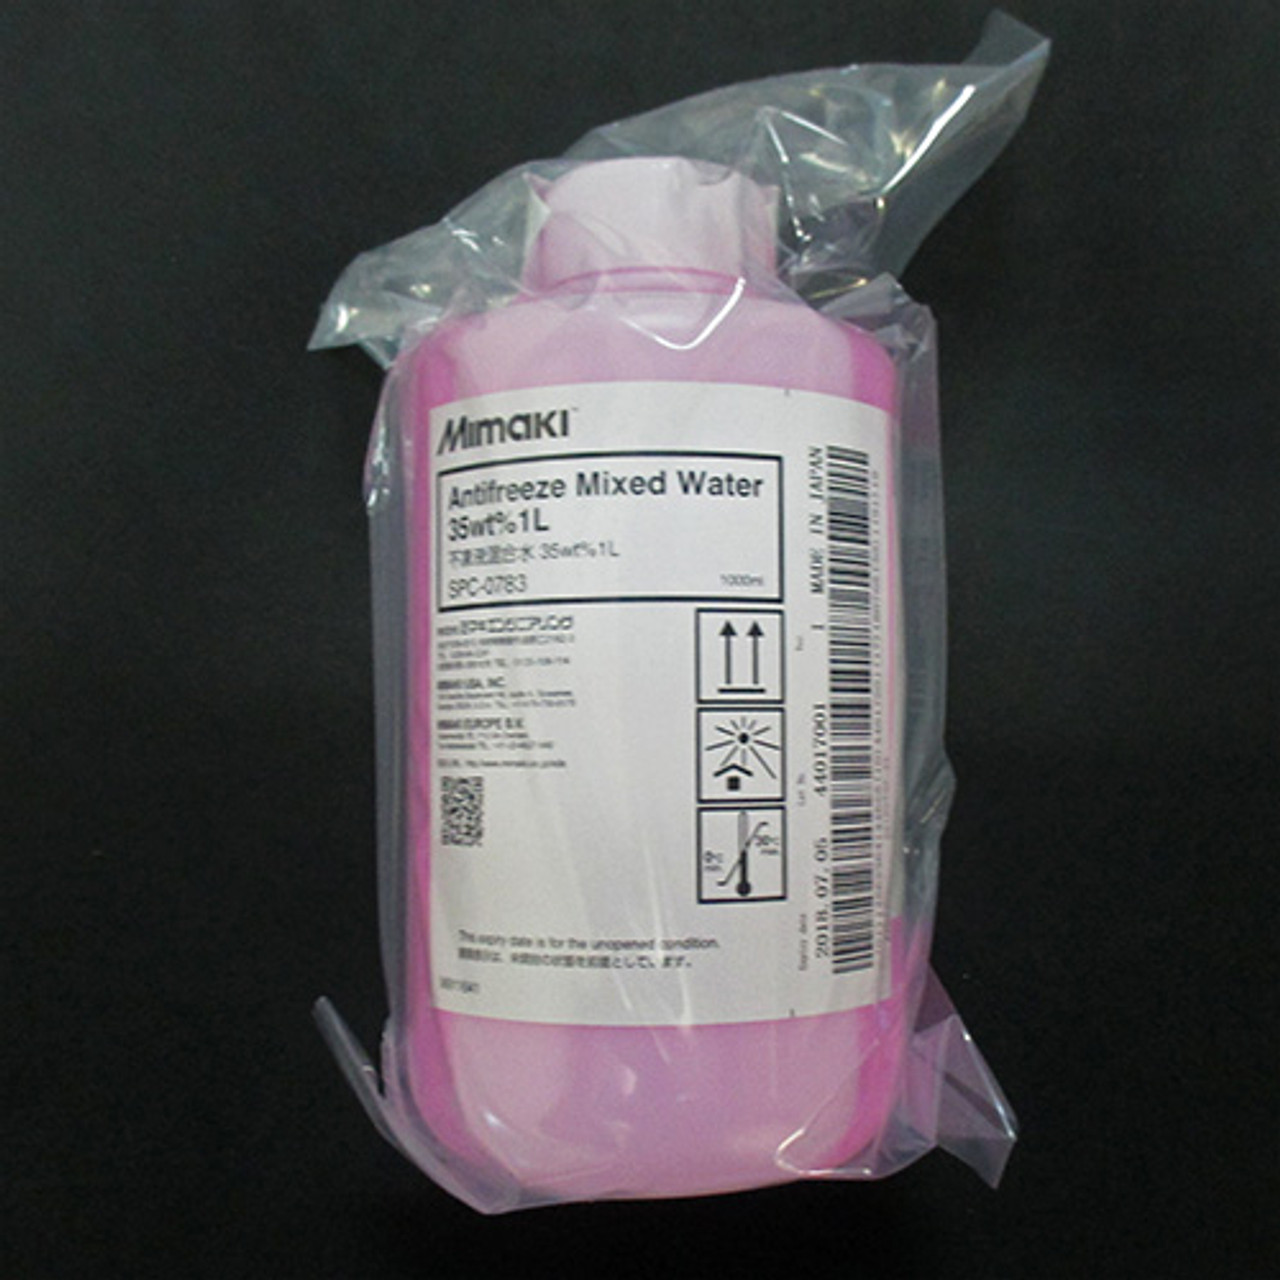 ANTIFREEZE MIXED WATER 35WT%1L SPC-0783